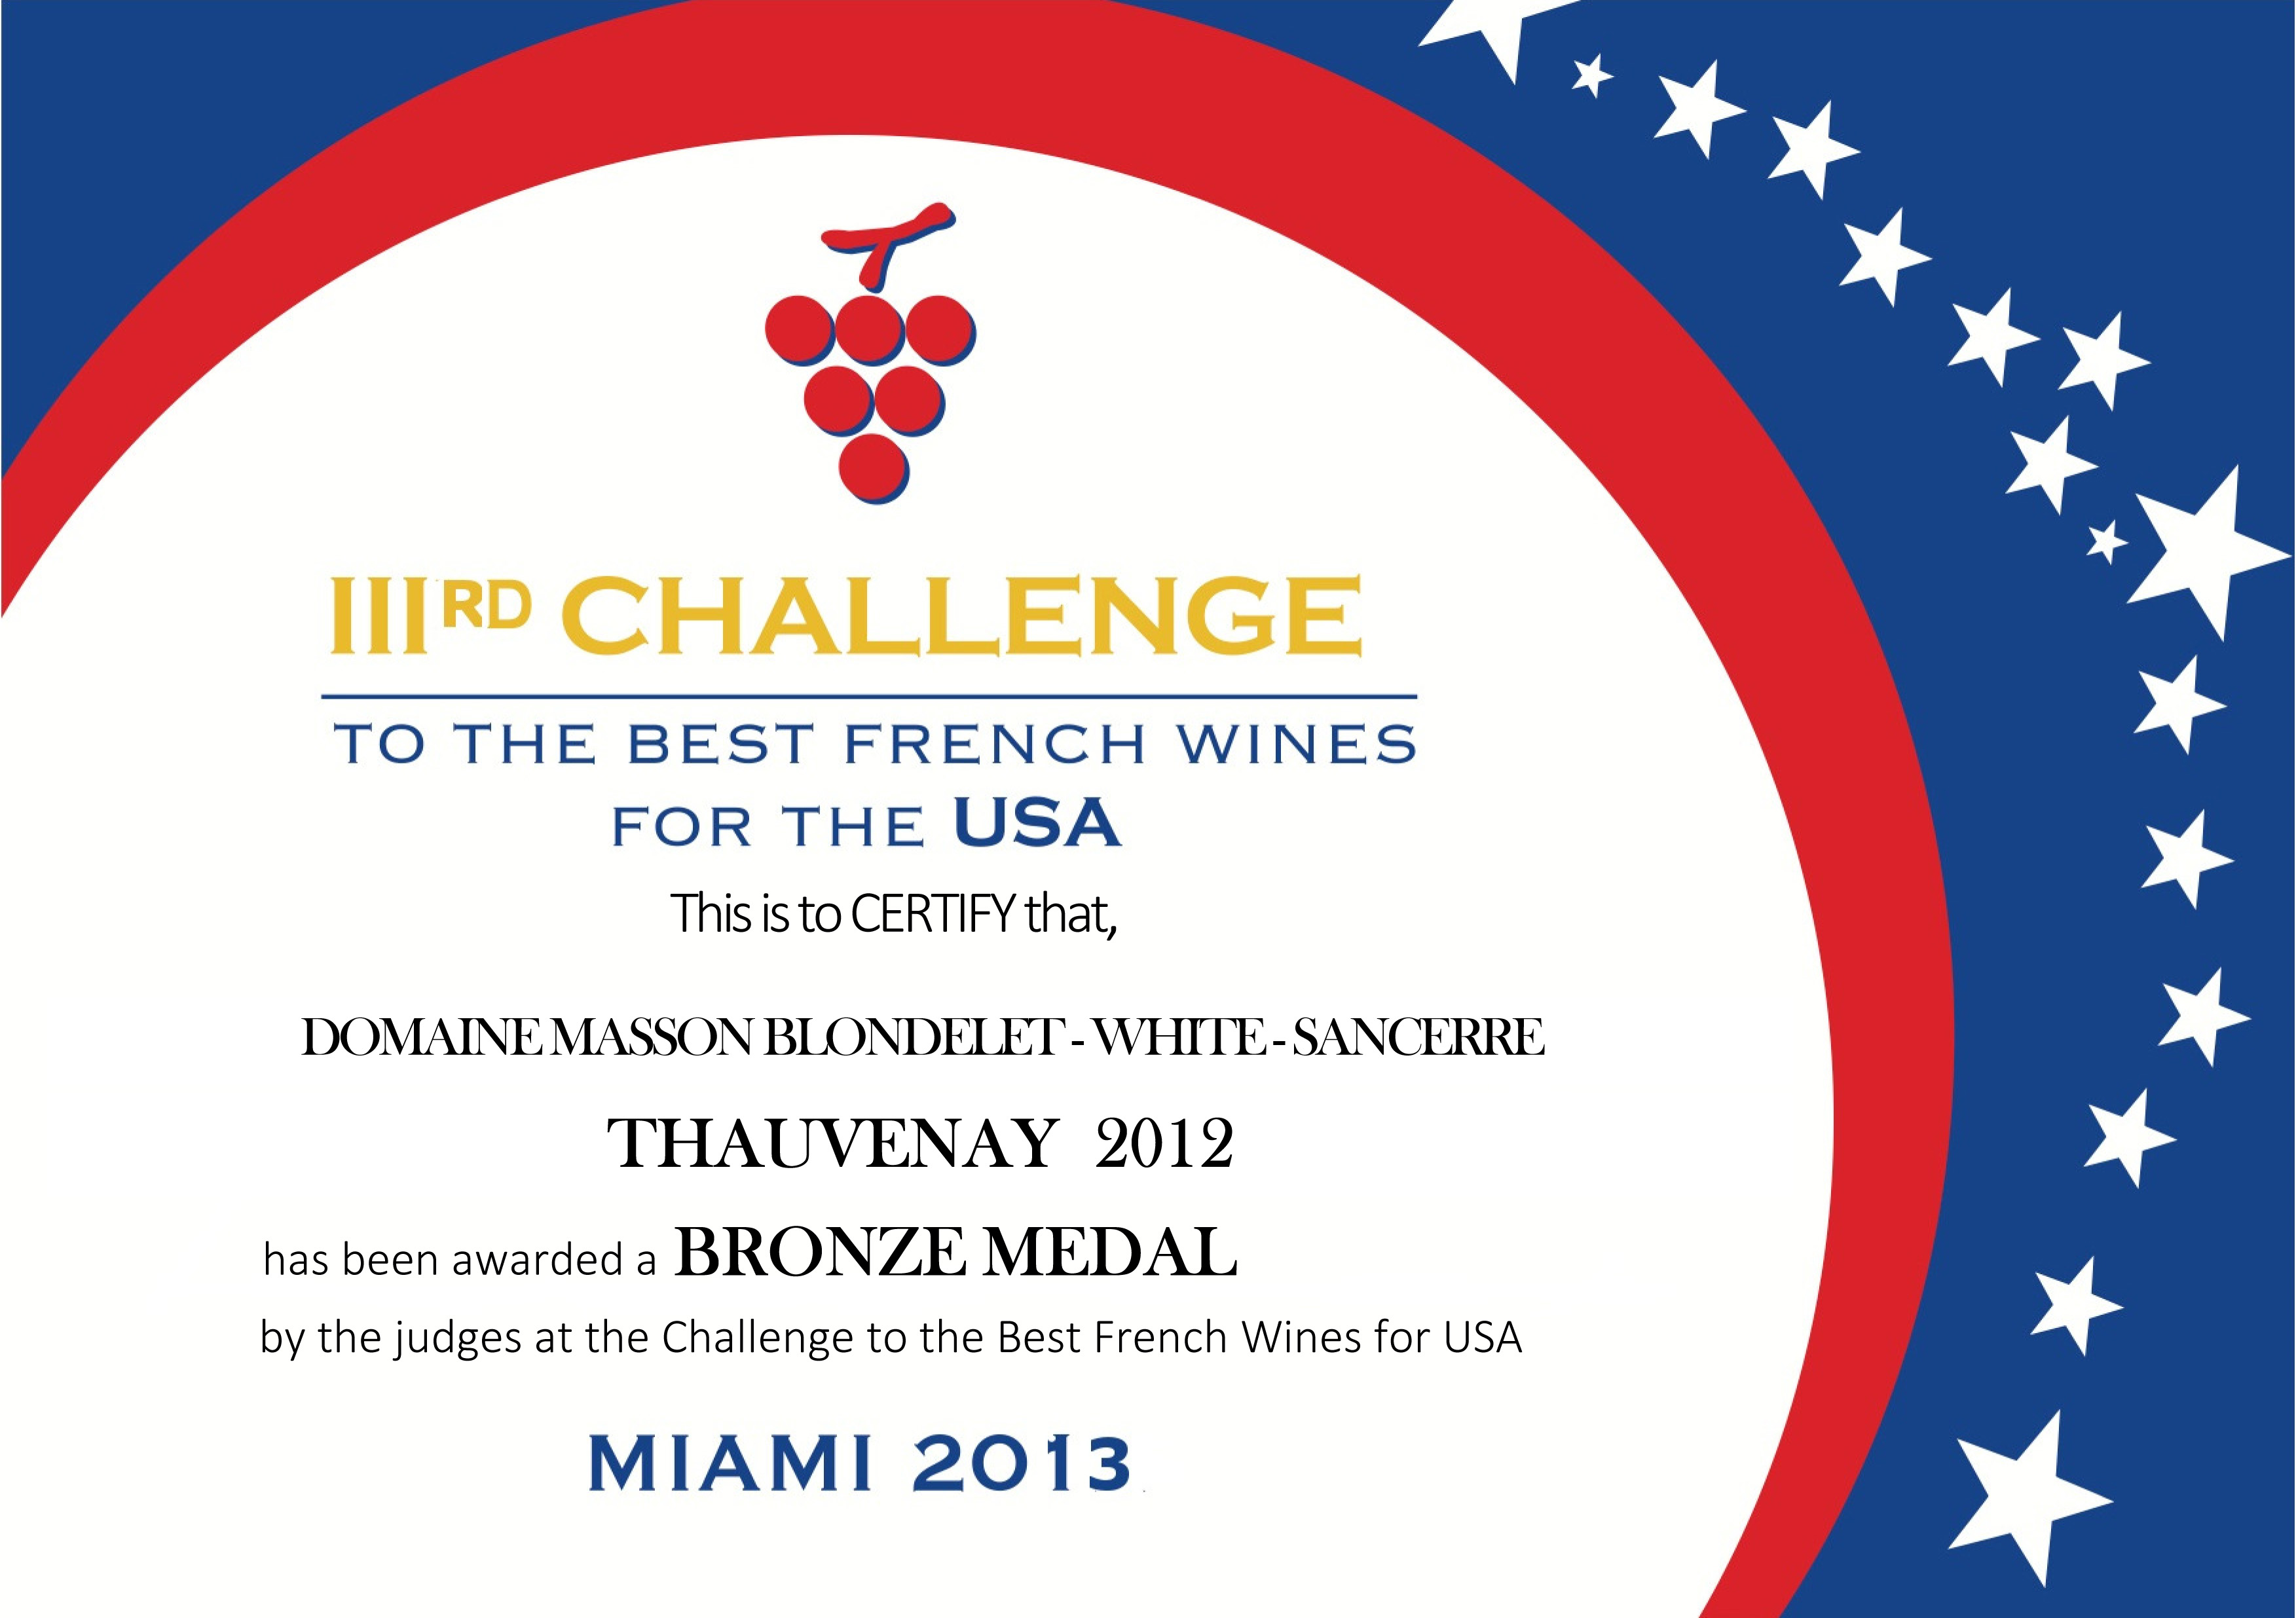 Domaine Masson-Blondelet Challenge to the Best French Wines for the USA